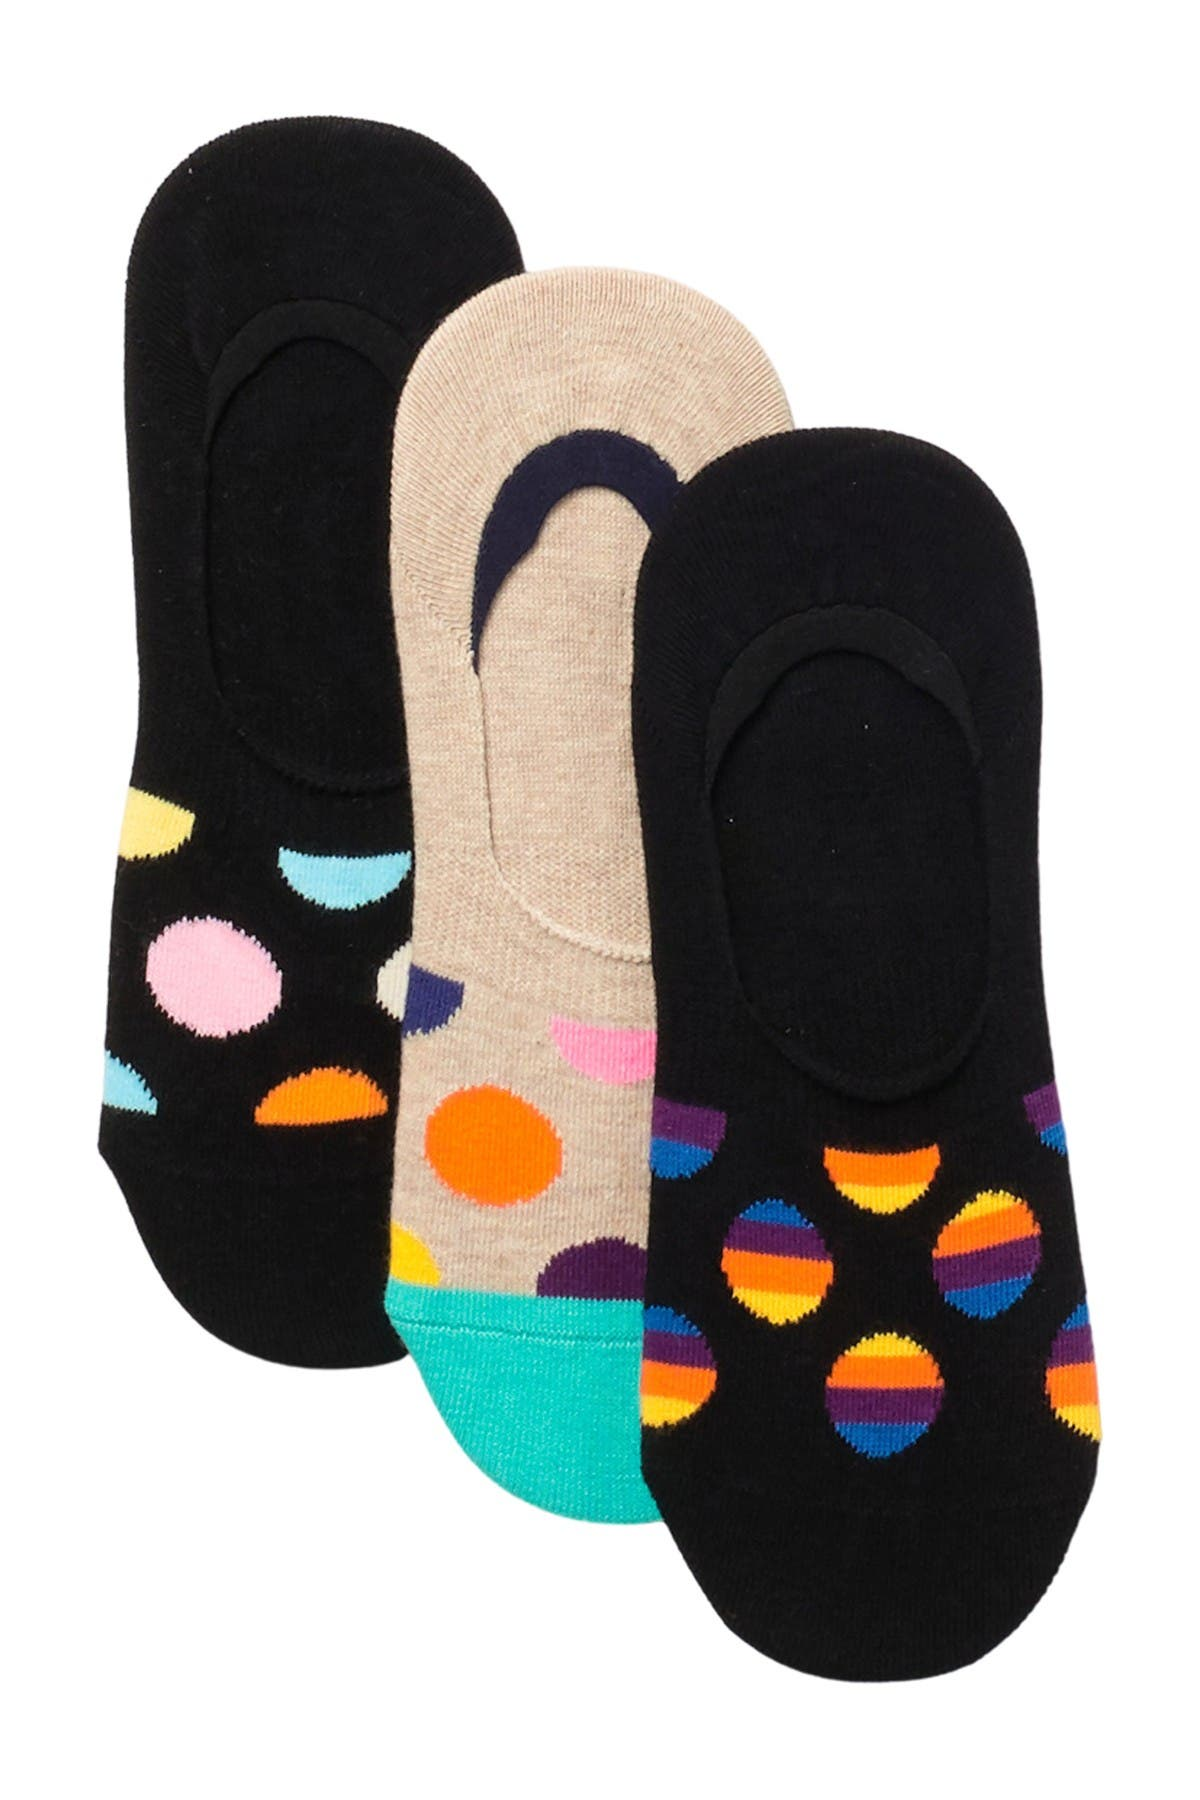 Image of Happy Socks Dot Liners - Pack of 3